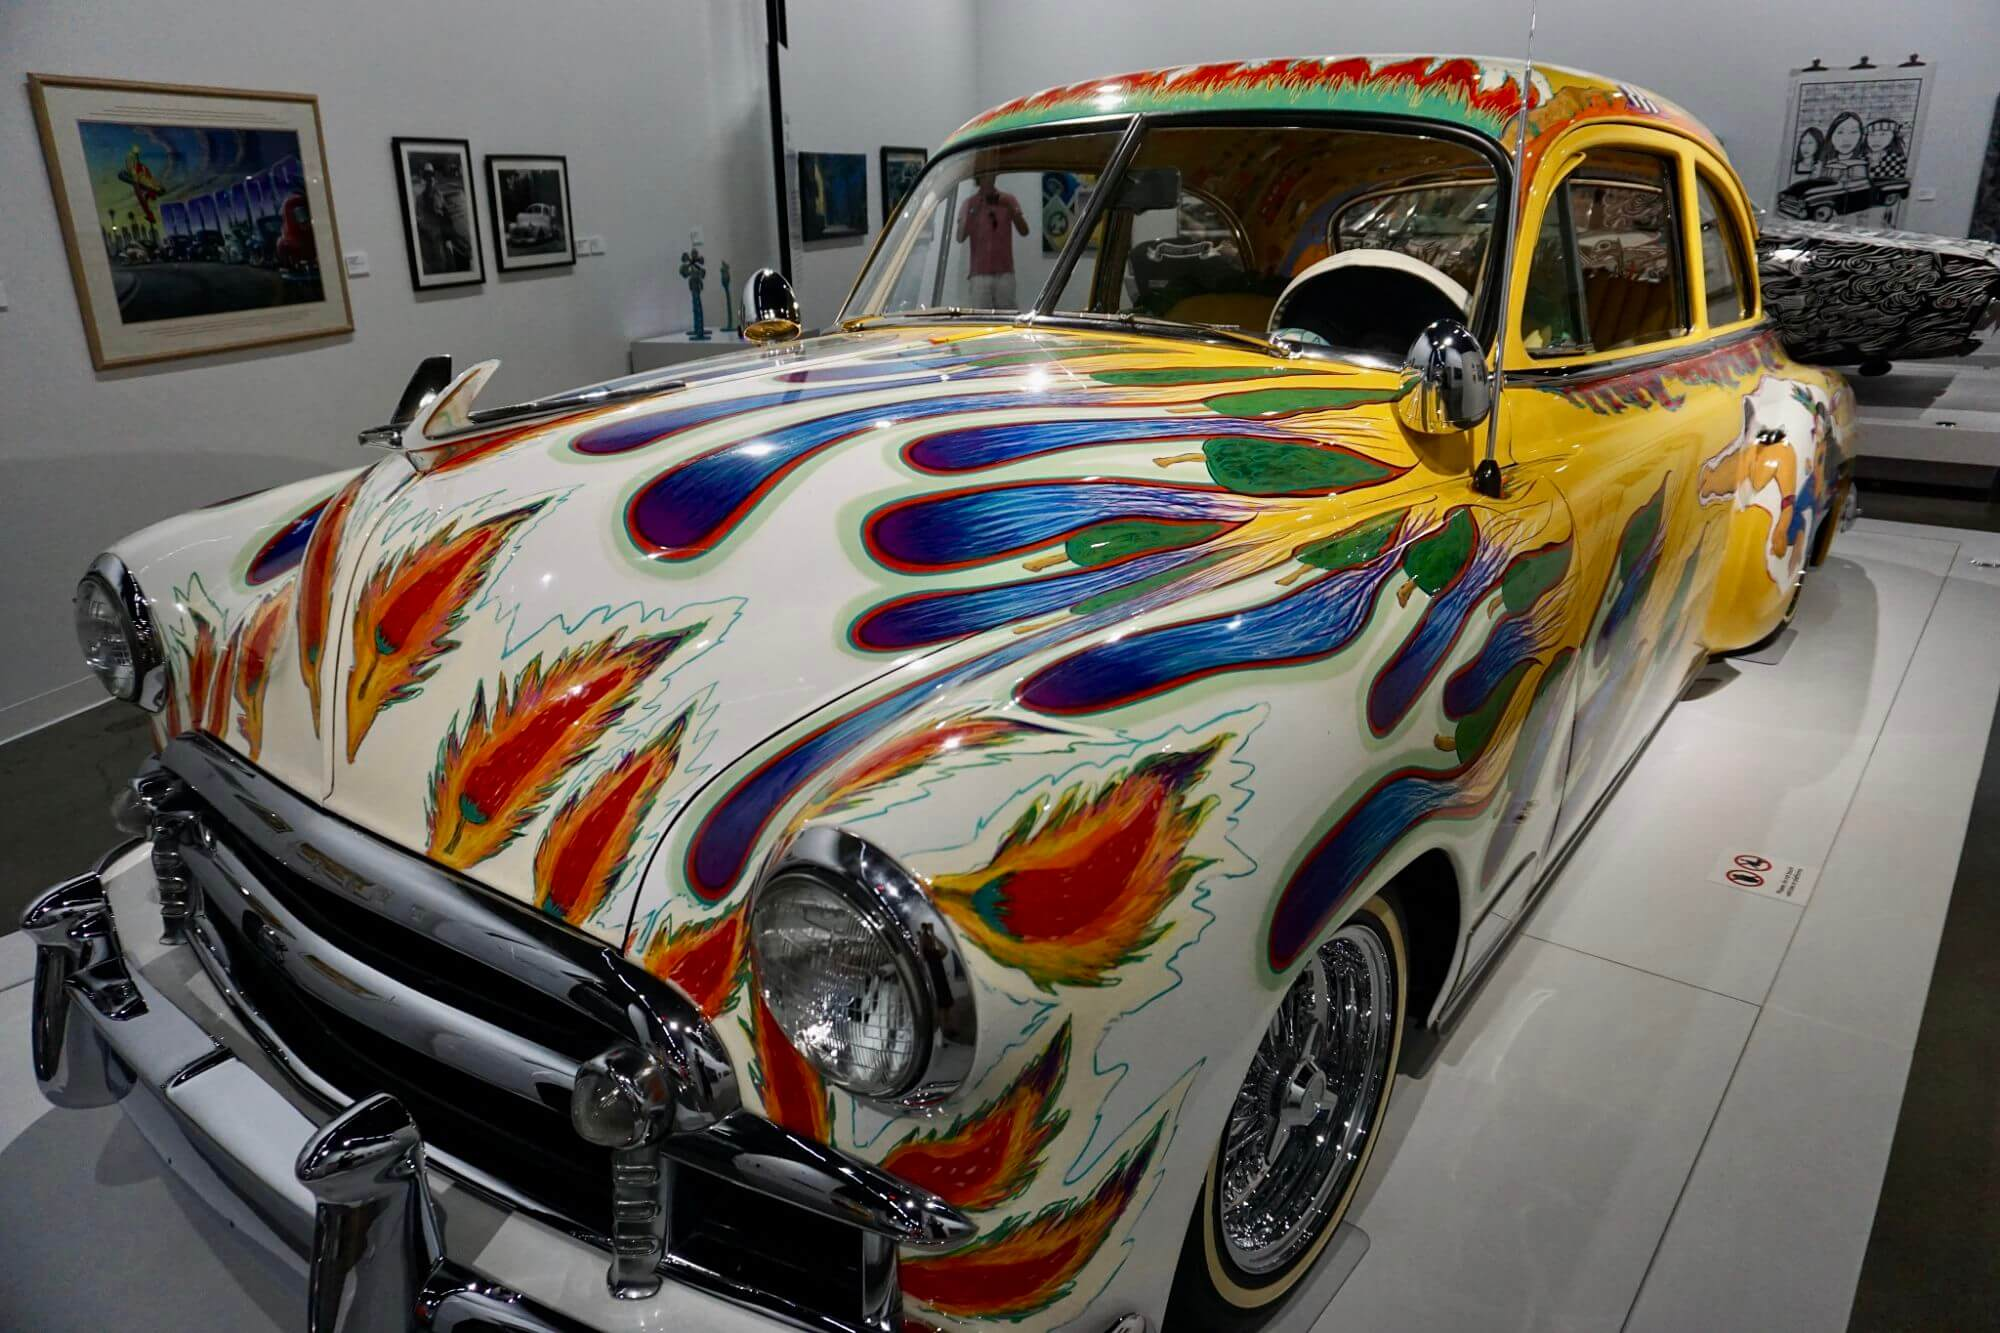 A lowrider exhibit at the Petersen Automotive Museums